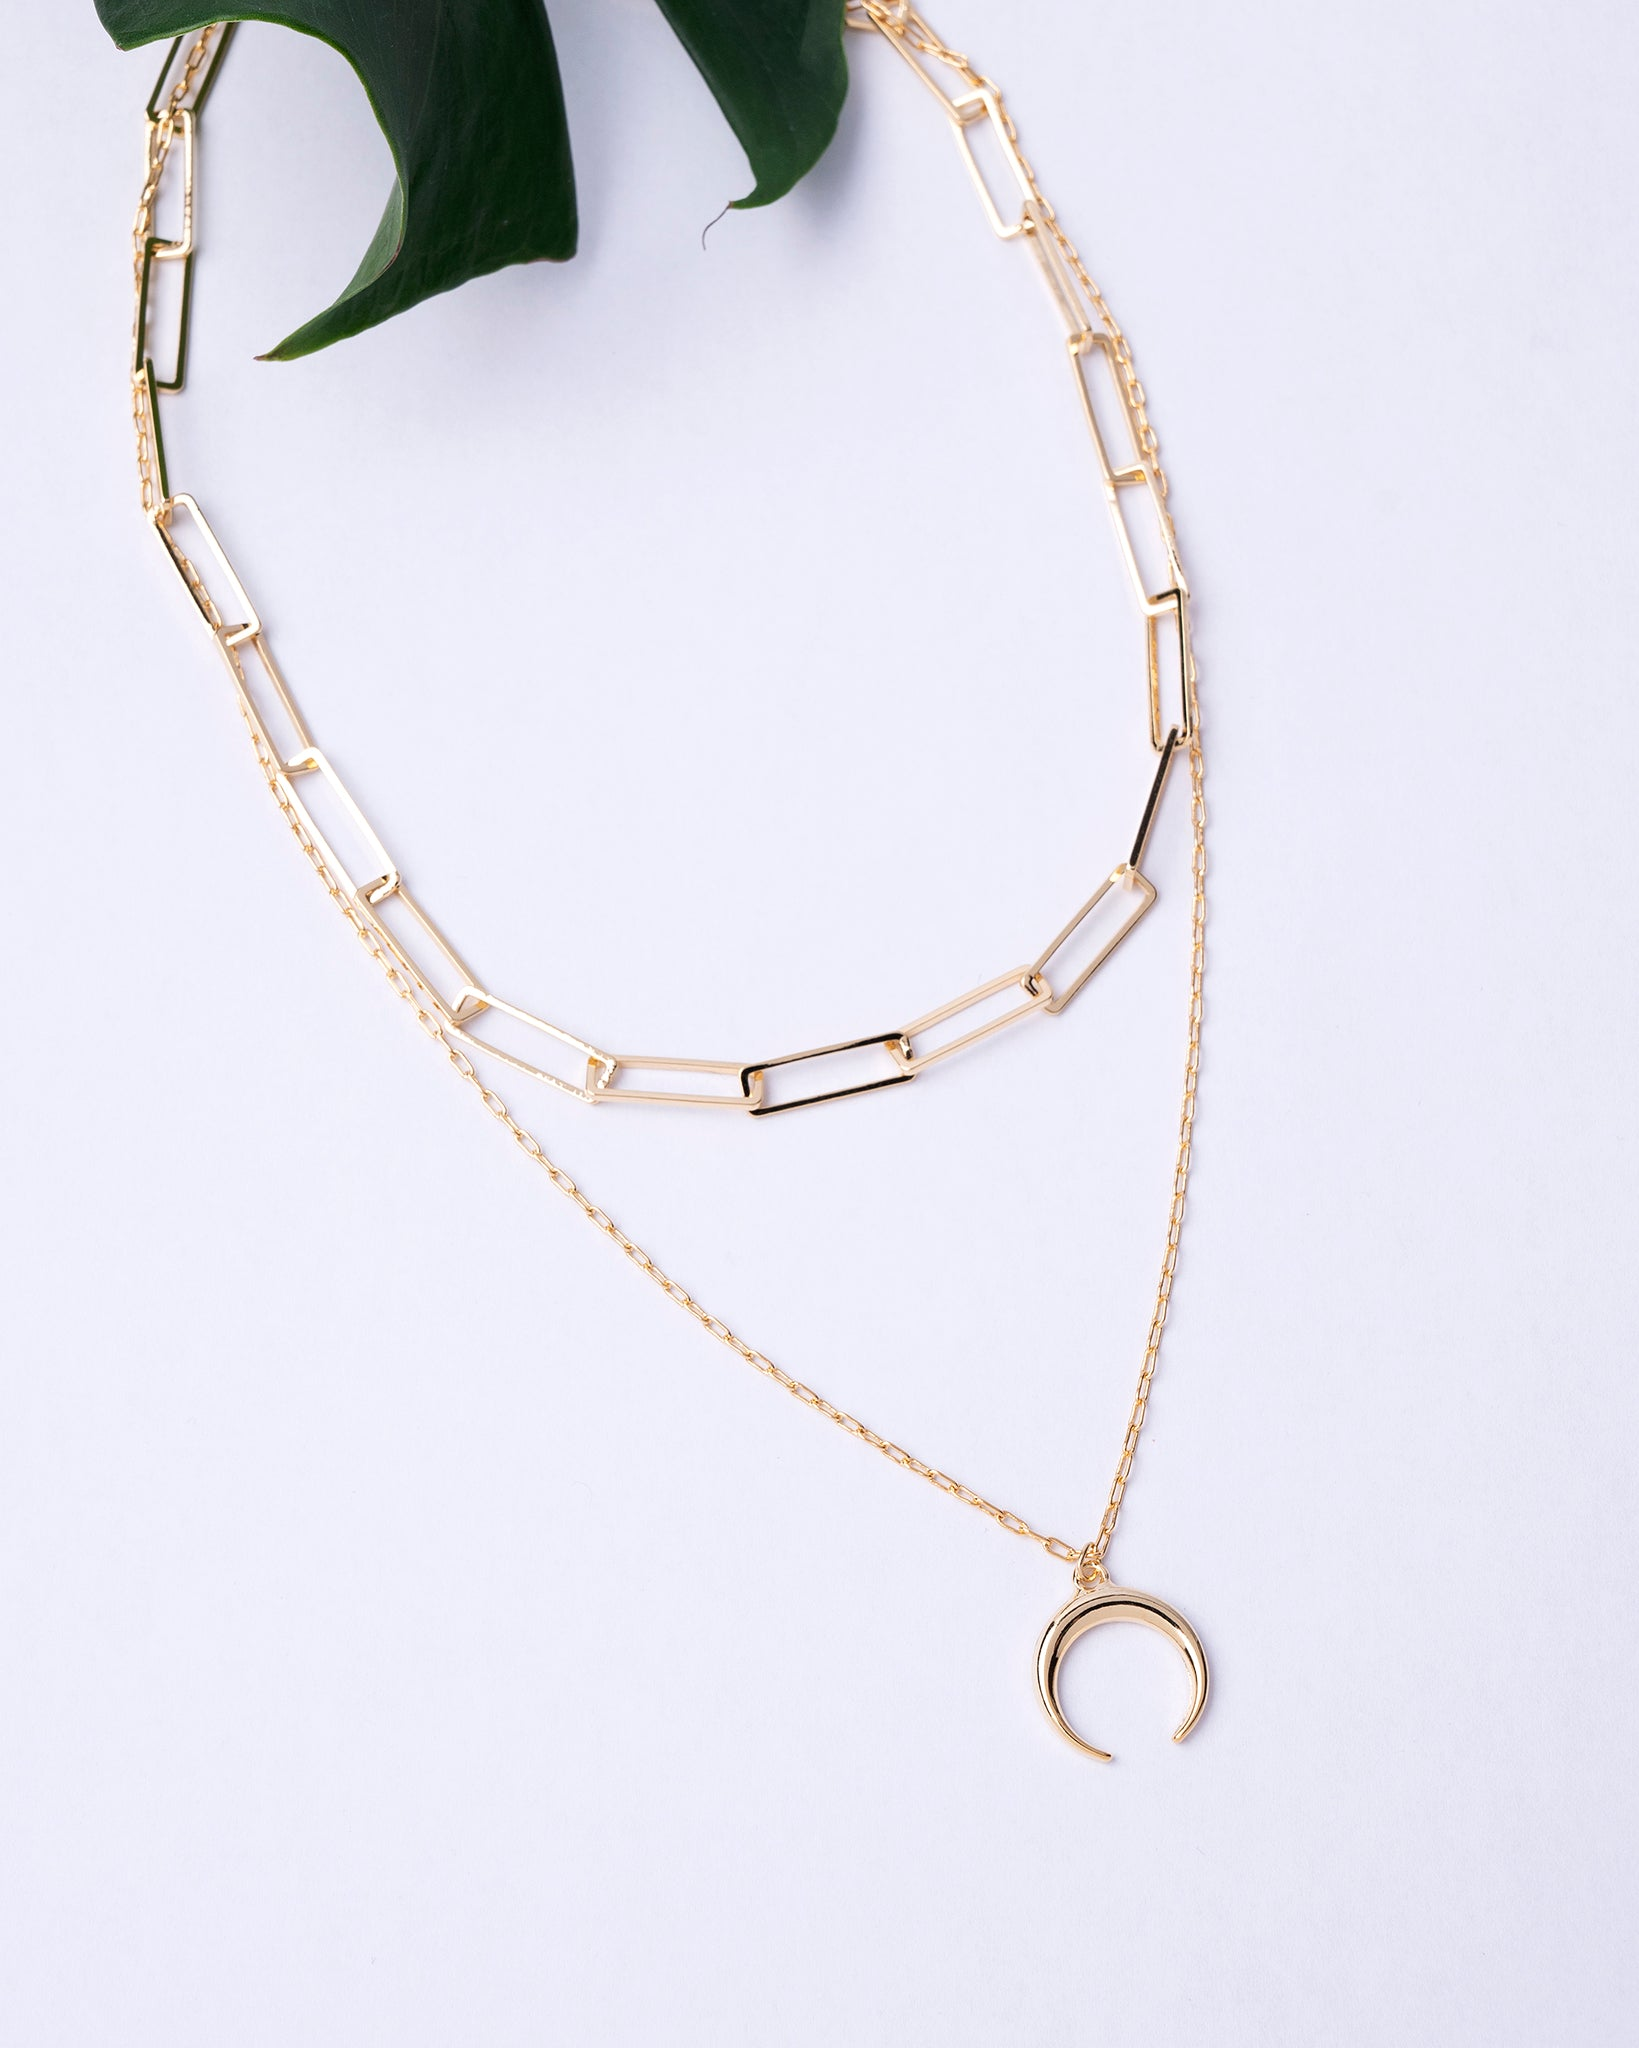 Cosmic Moon Layered Necklace